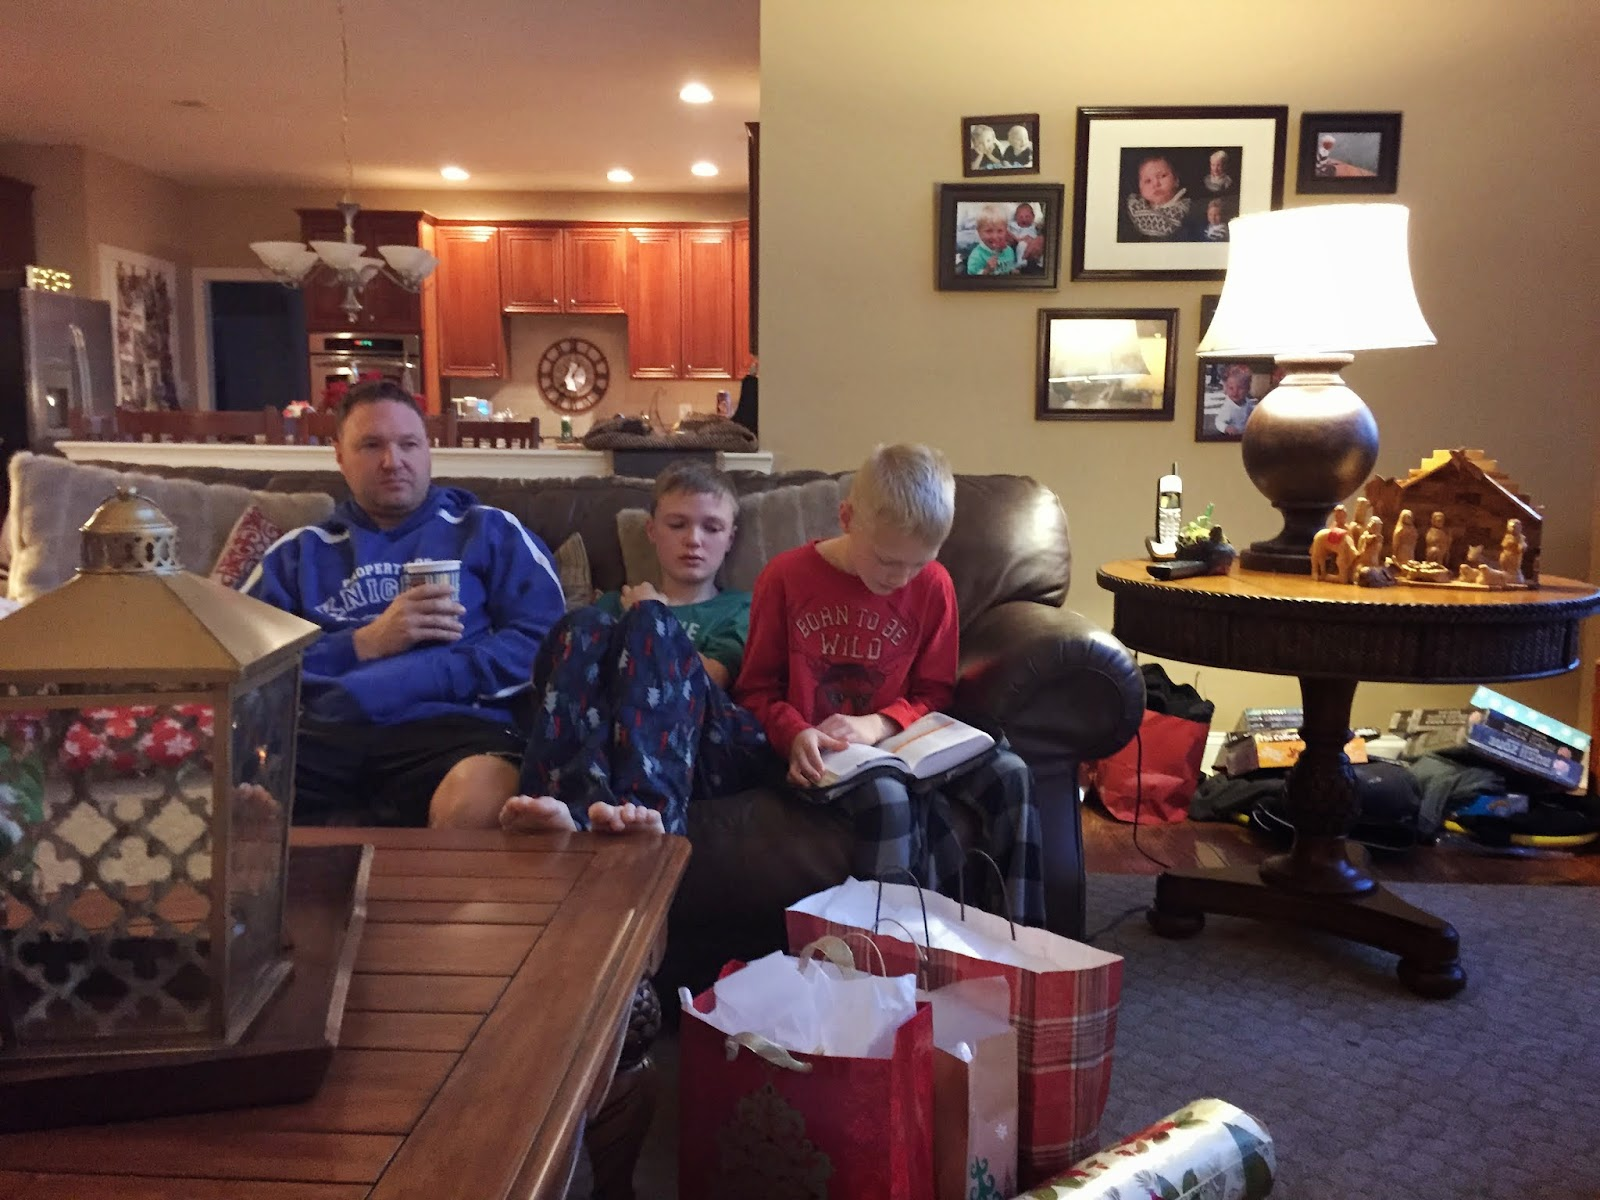 Christmas morning gift opening games